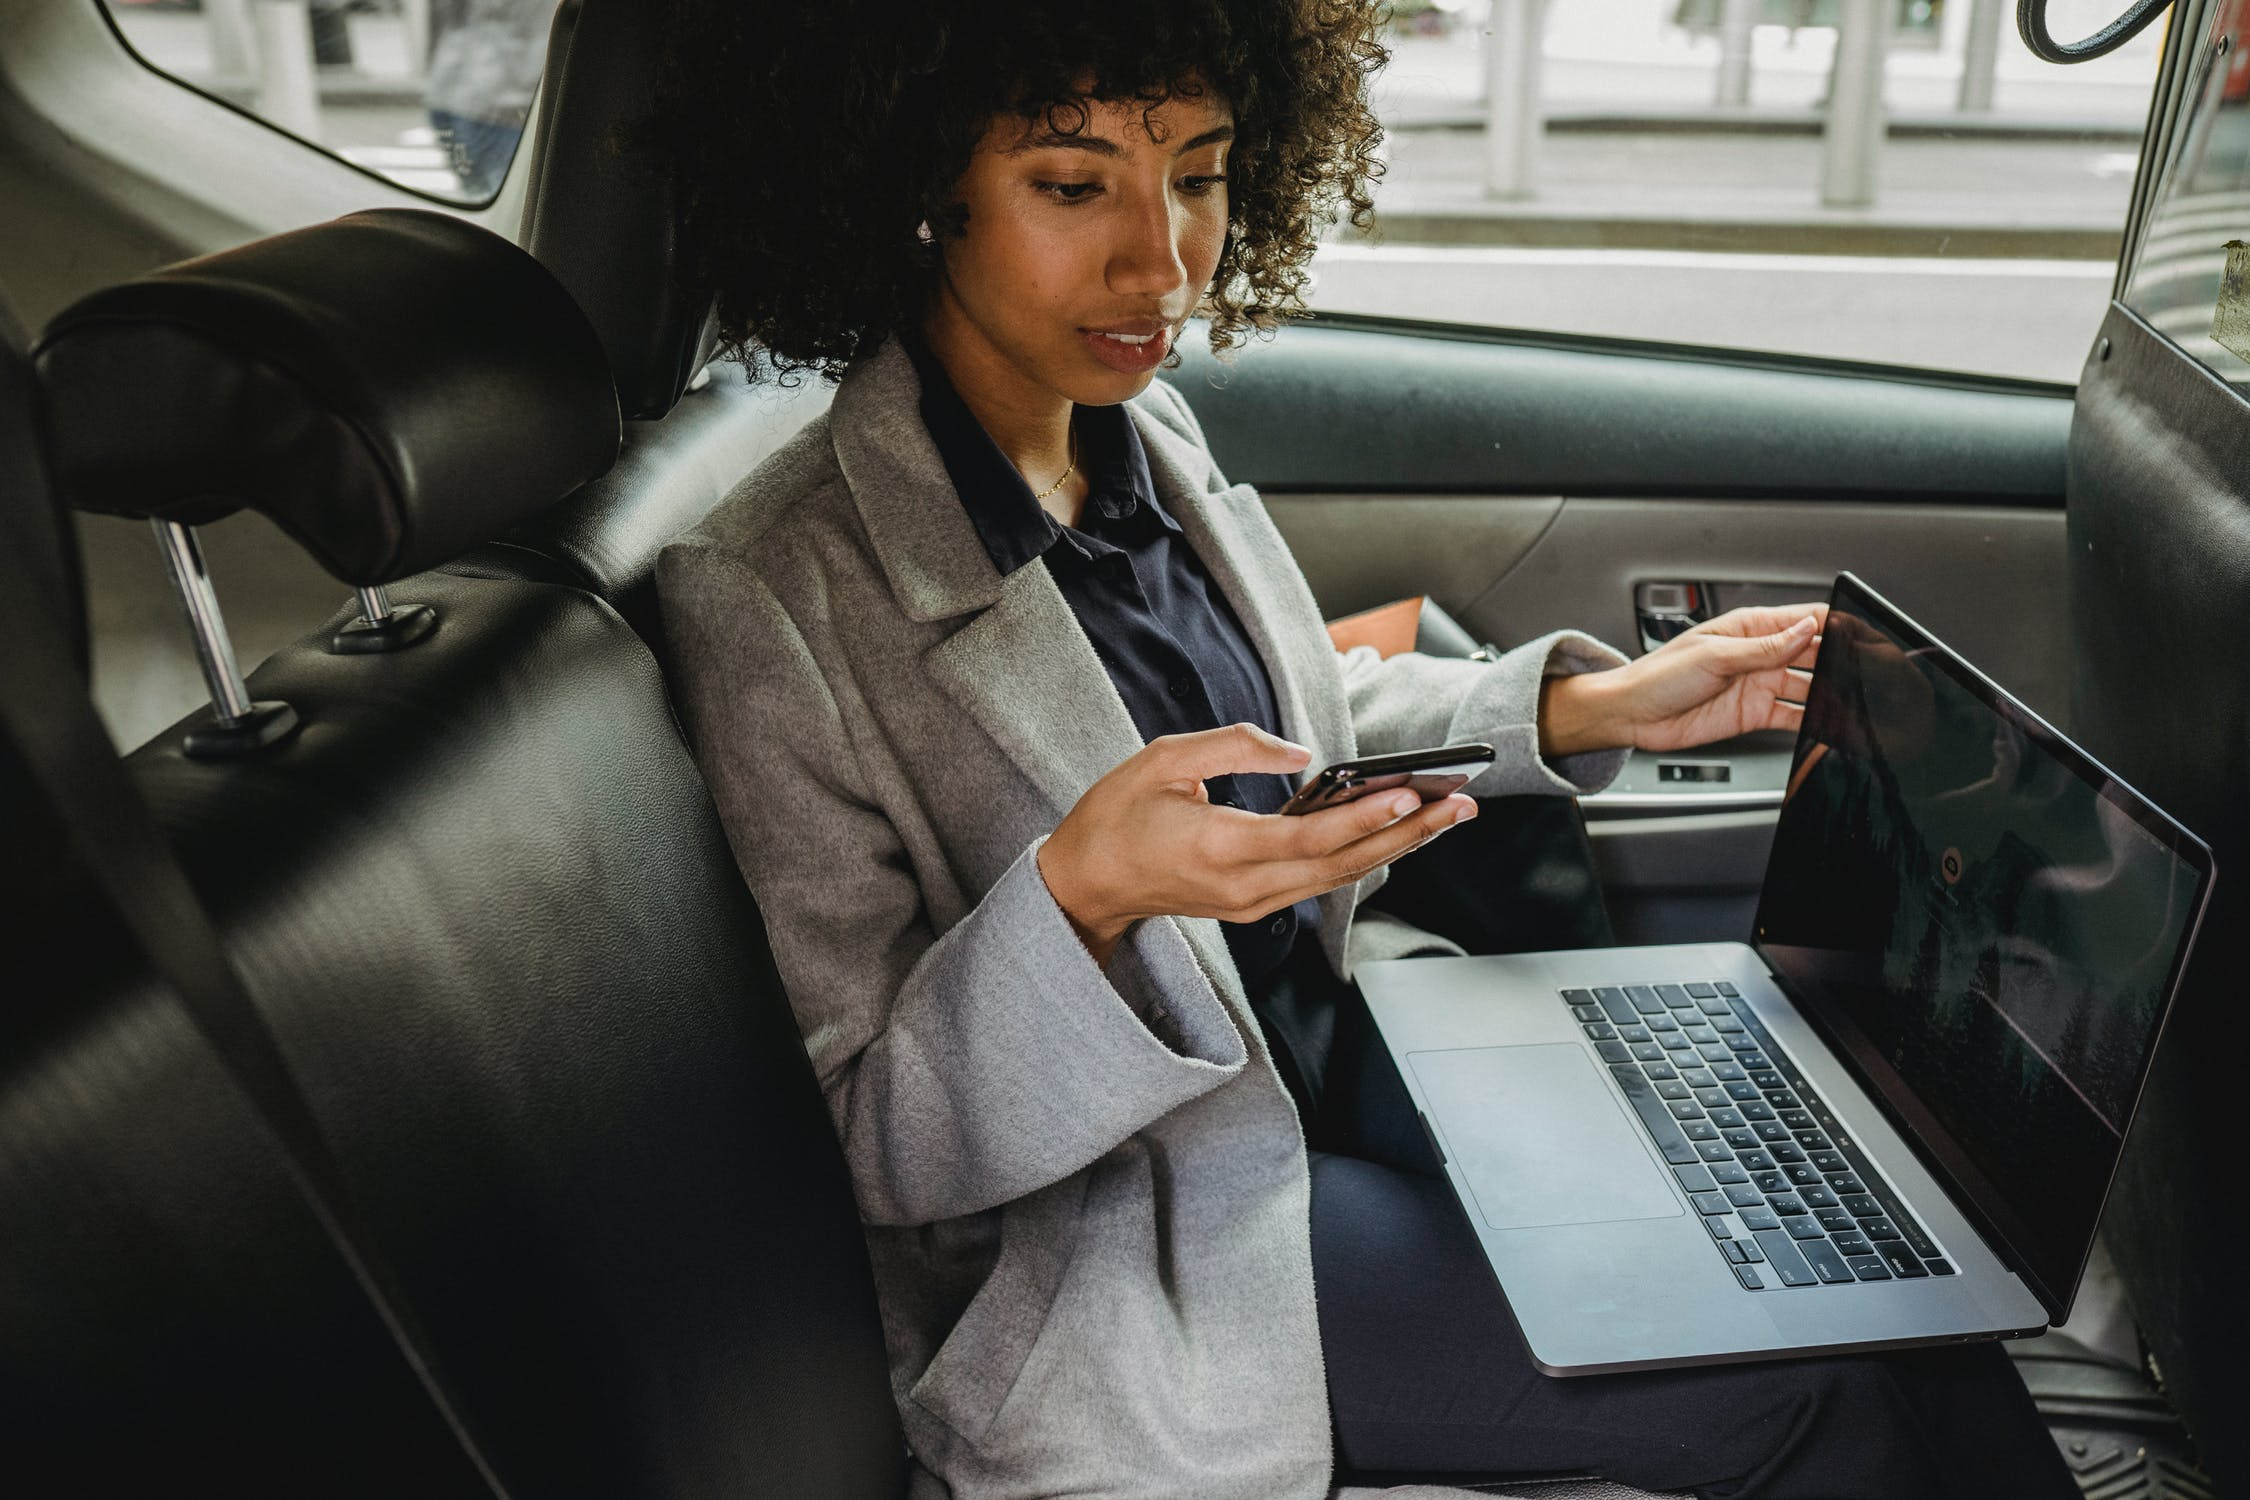 Black woman holding smartphone in backseat of car